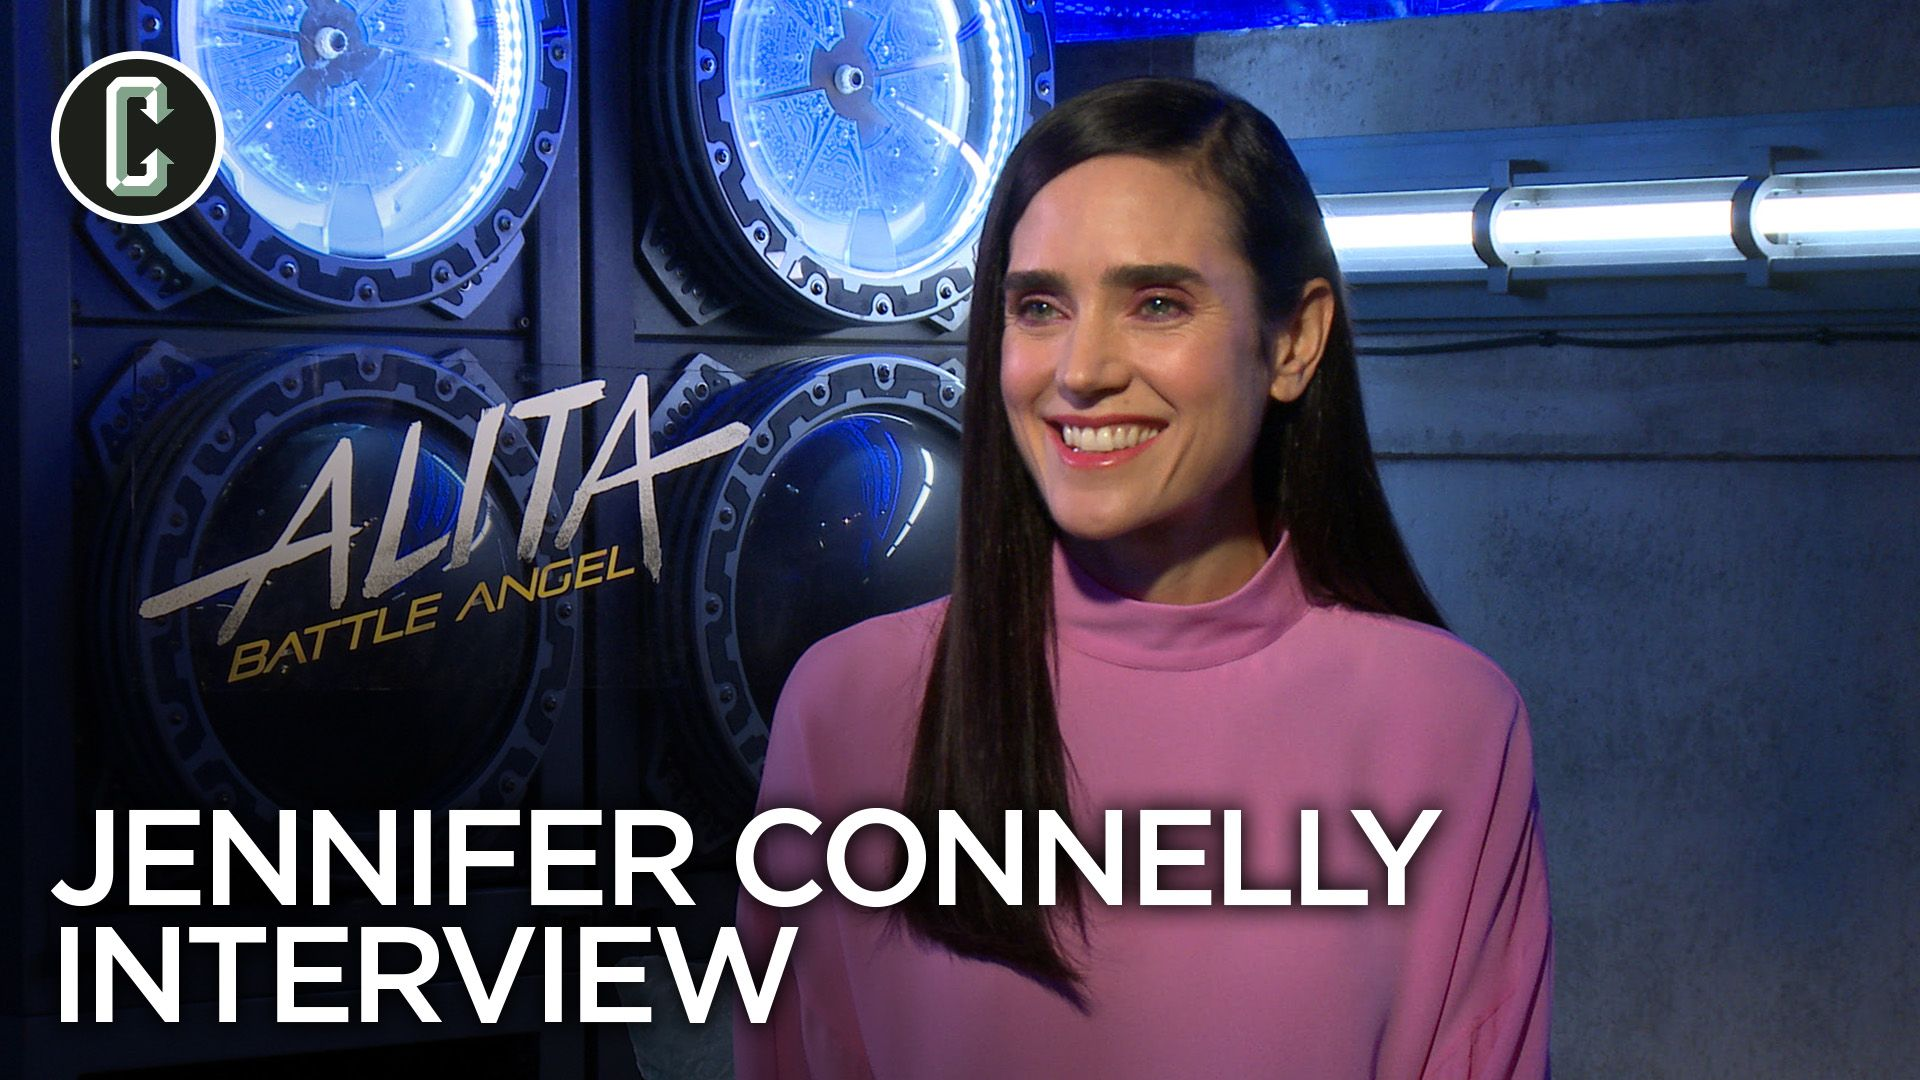 Jennifer Connelly on 'Alita: Battle Angel', 'Top Gun 2' and the 'Snowpiercer' TV series